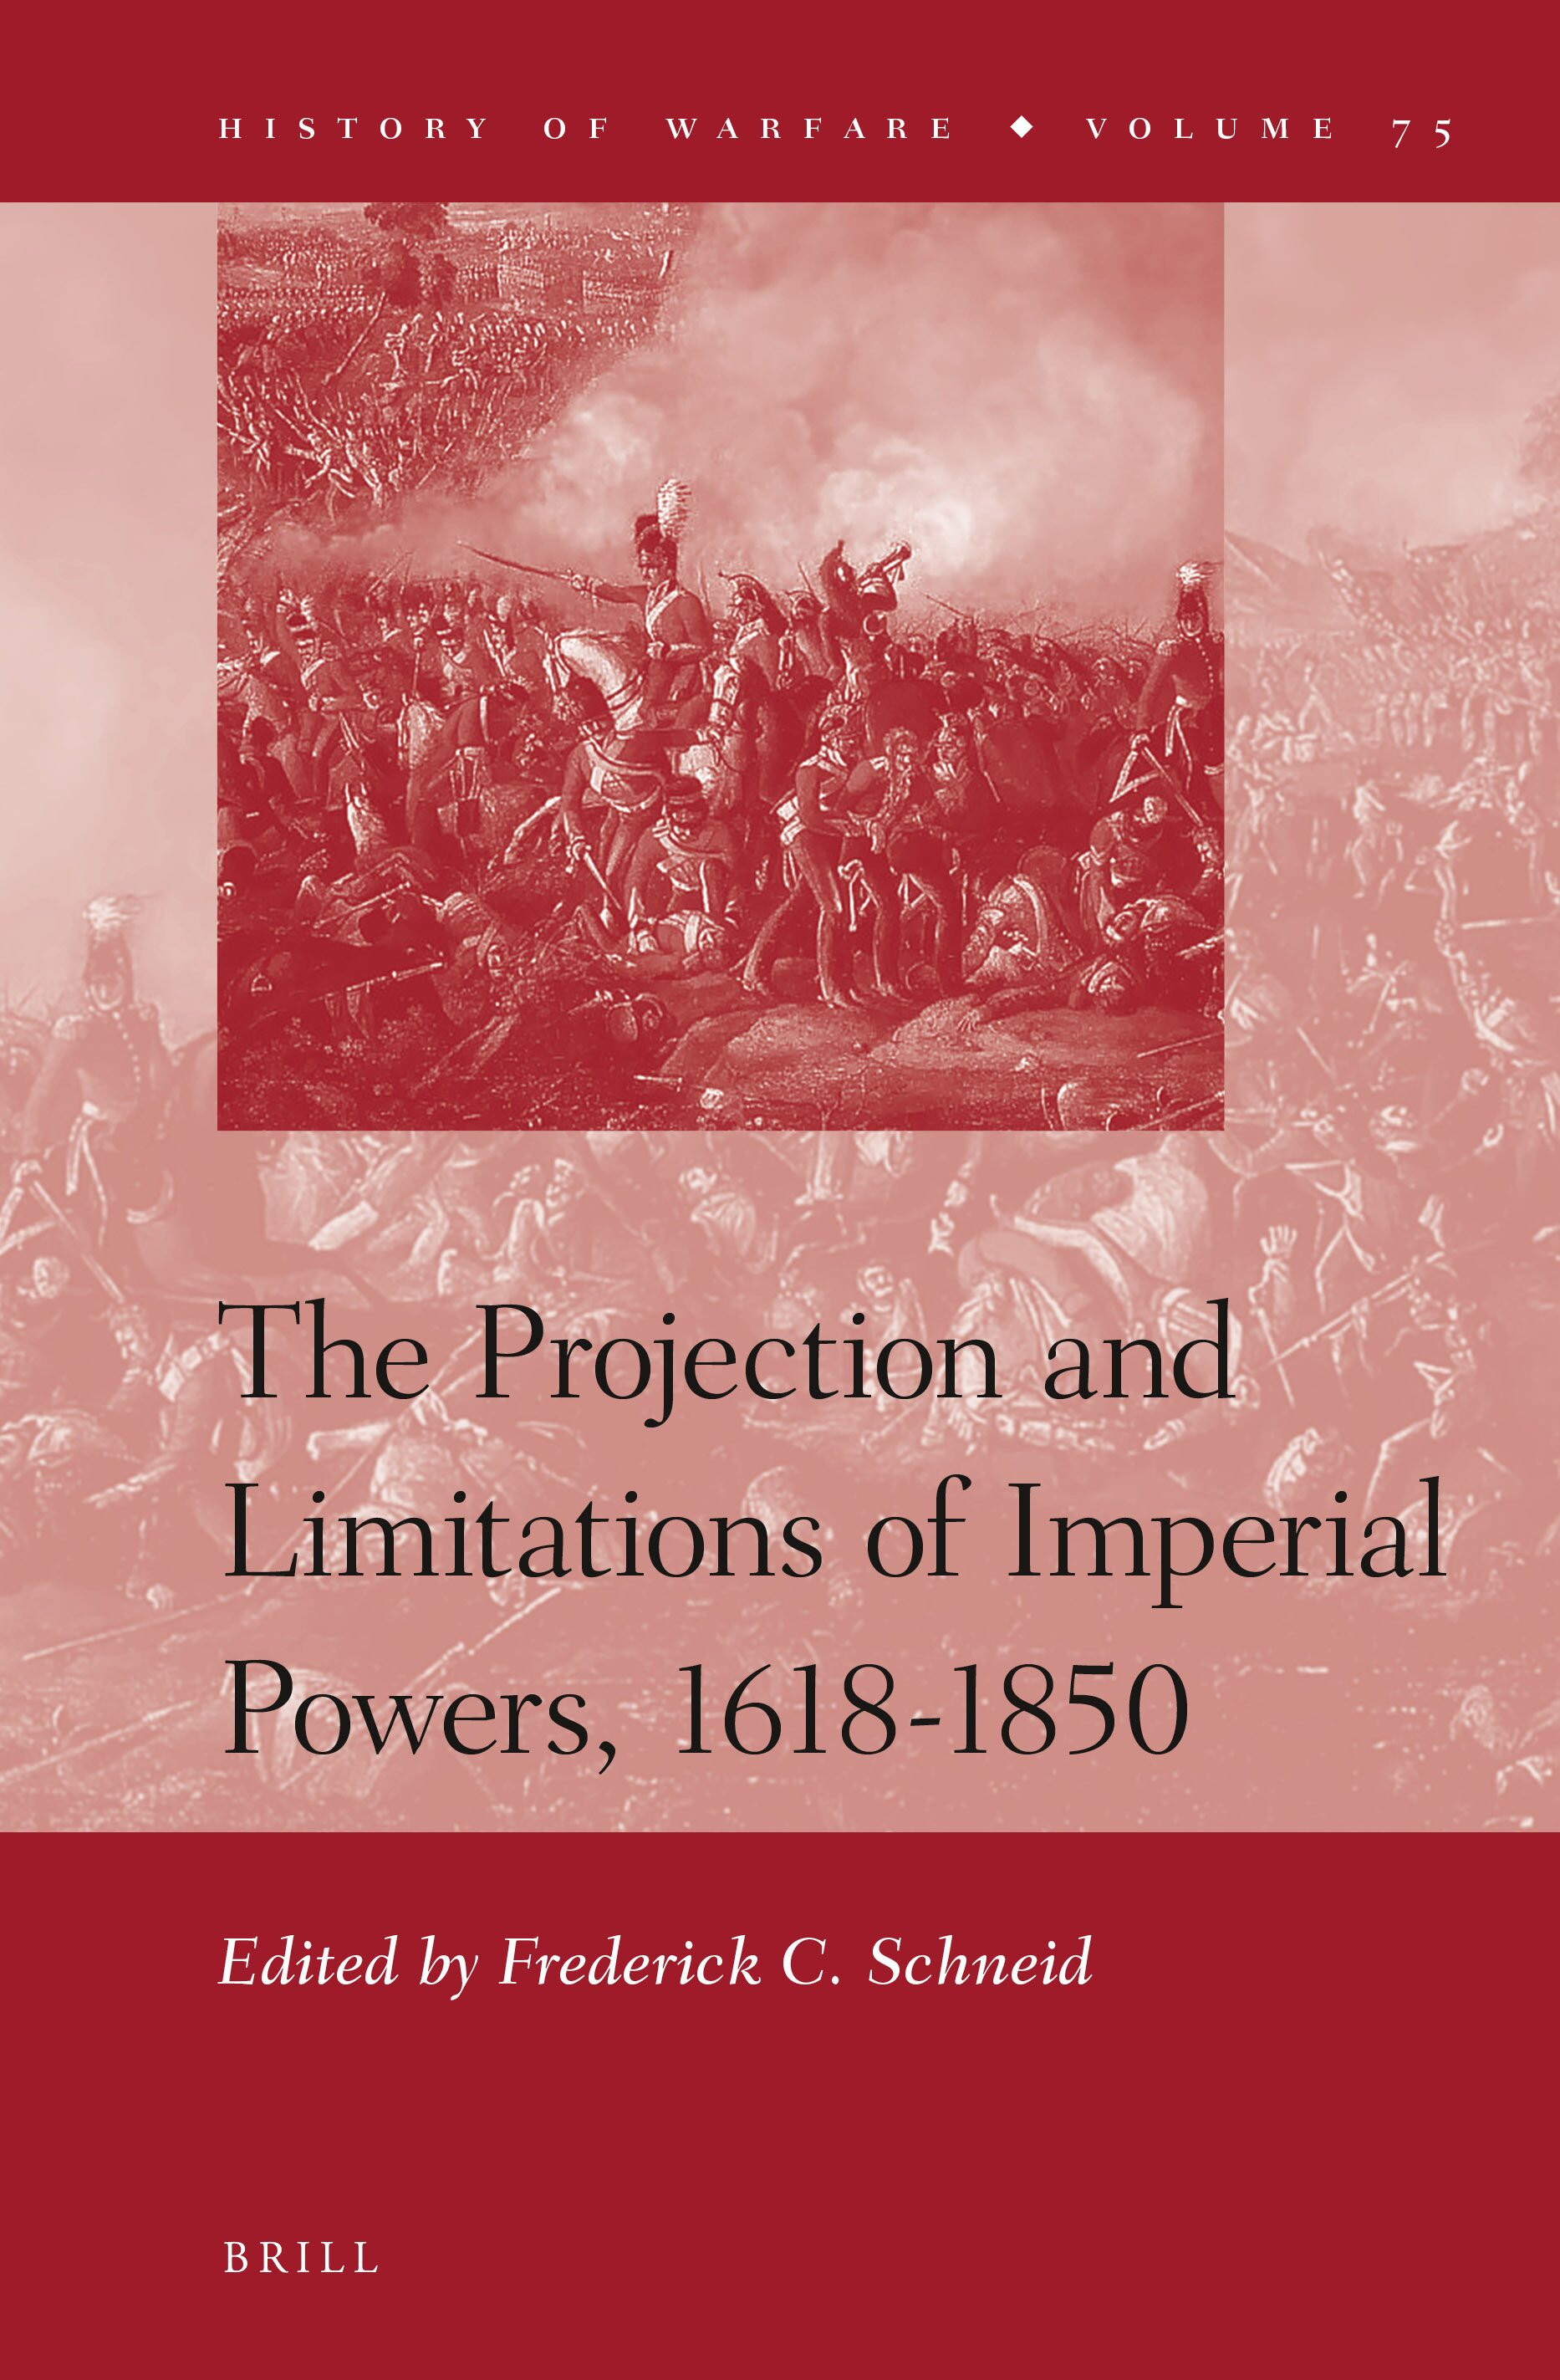 The Projection and Limitations of Imperial Powers, 1618-1850